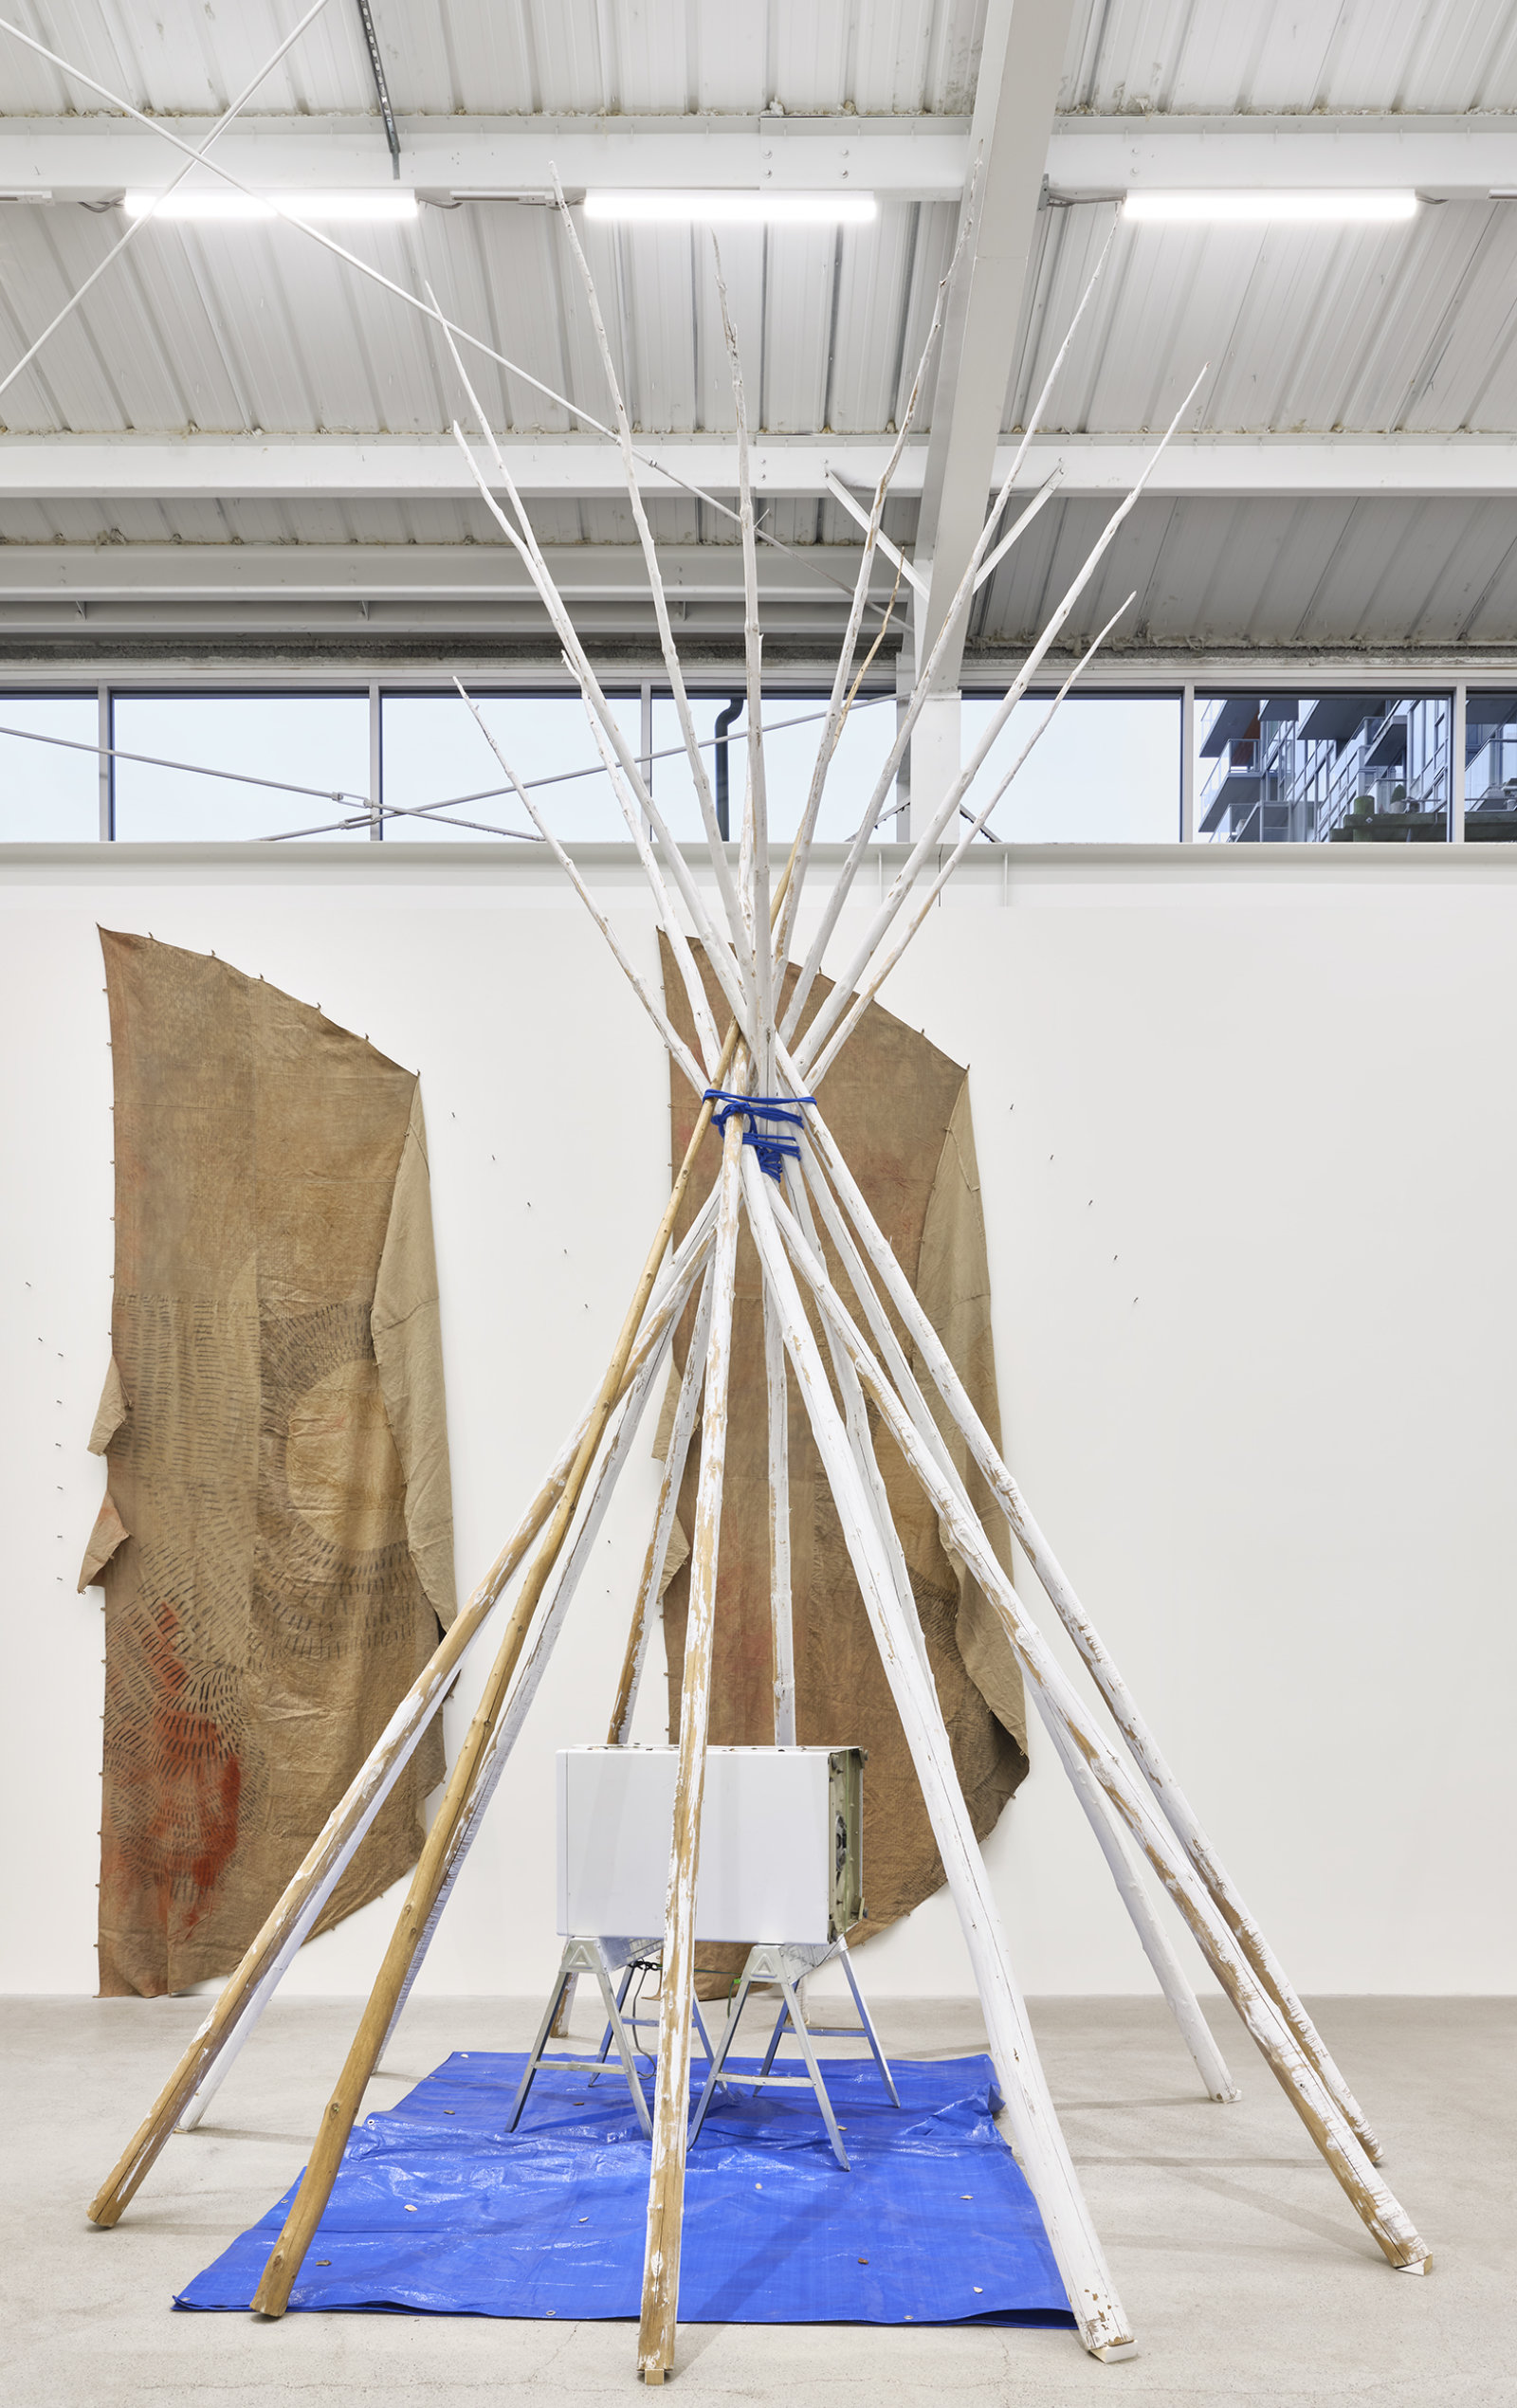 Duane Linklater, anteclovis, 2020, teepee poles, paint, nylon rope, tarpaulin, steel sawhorses, washing machine, tie-down strap, arrowheads, 230 x 158 x 158 in. (584 x 401 x 401 cm)